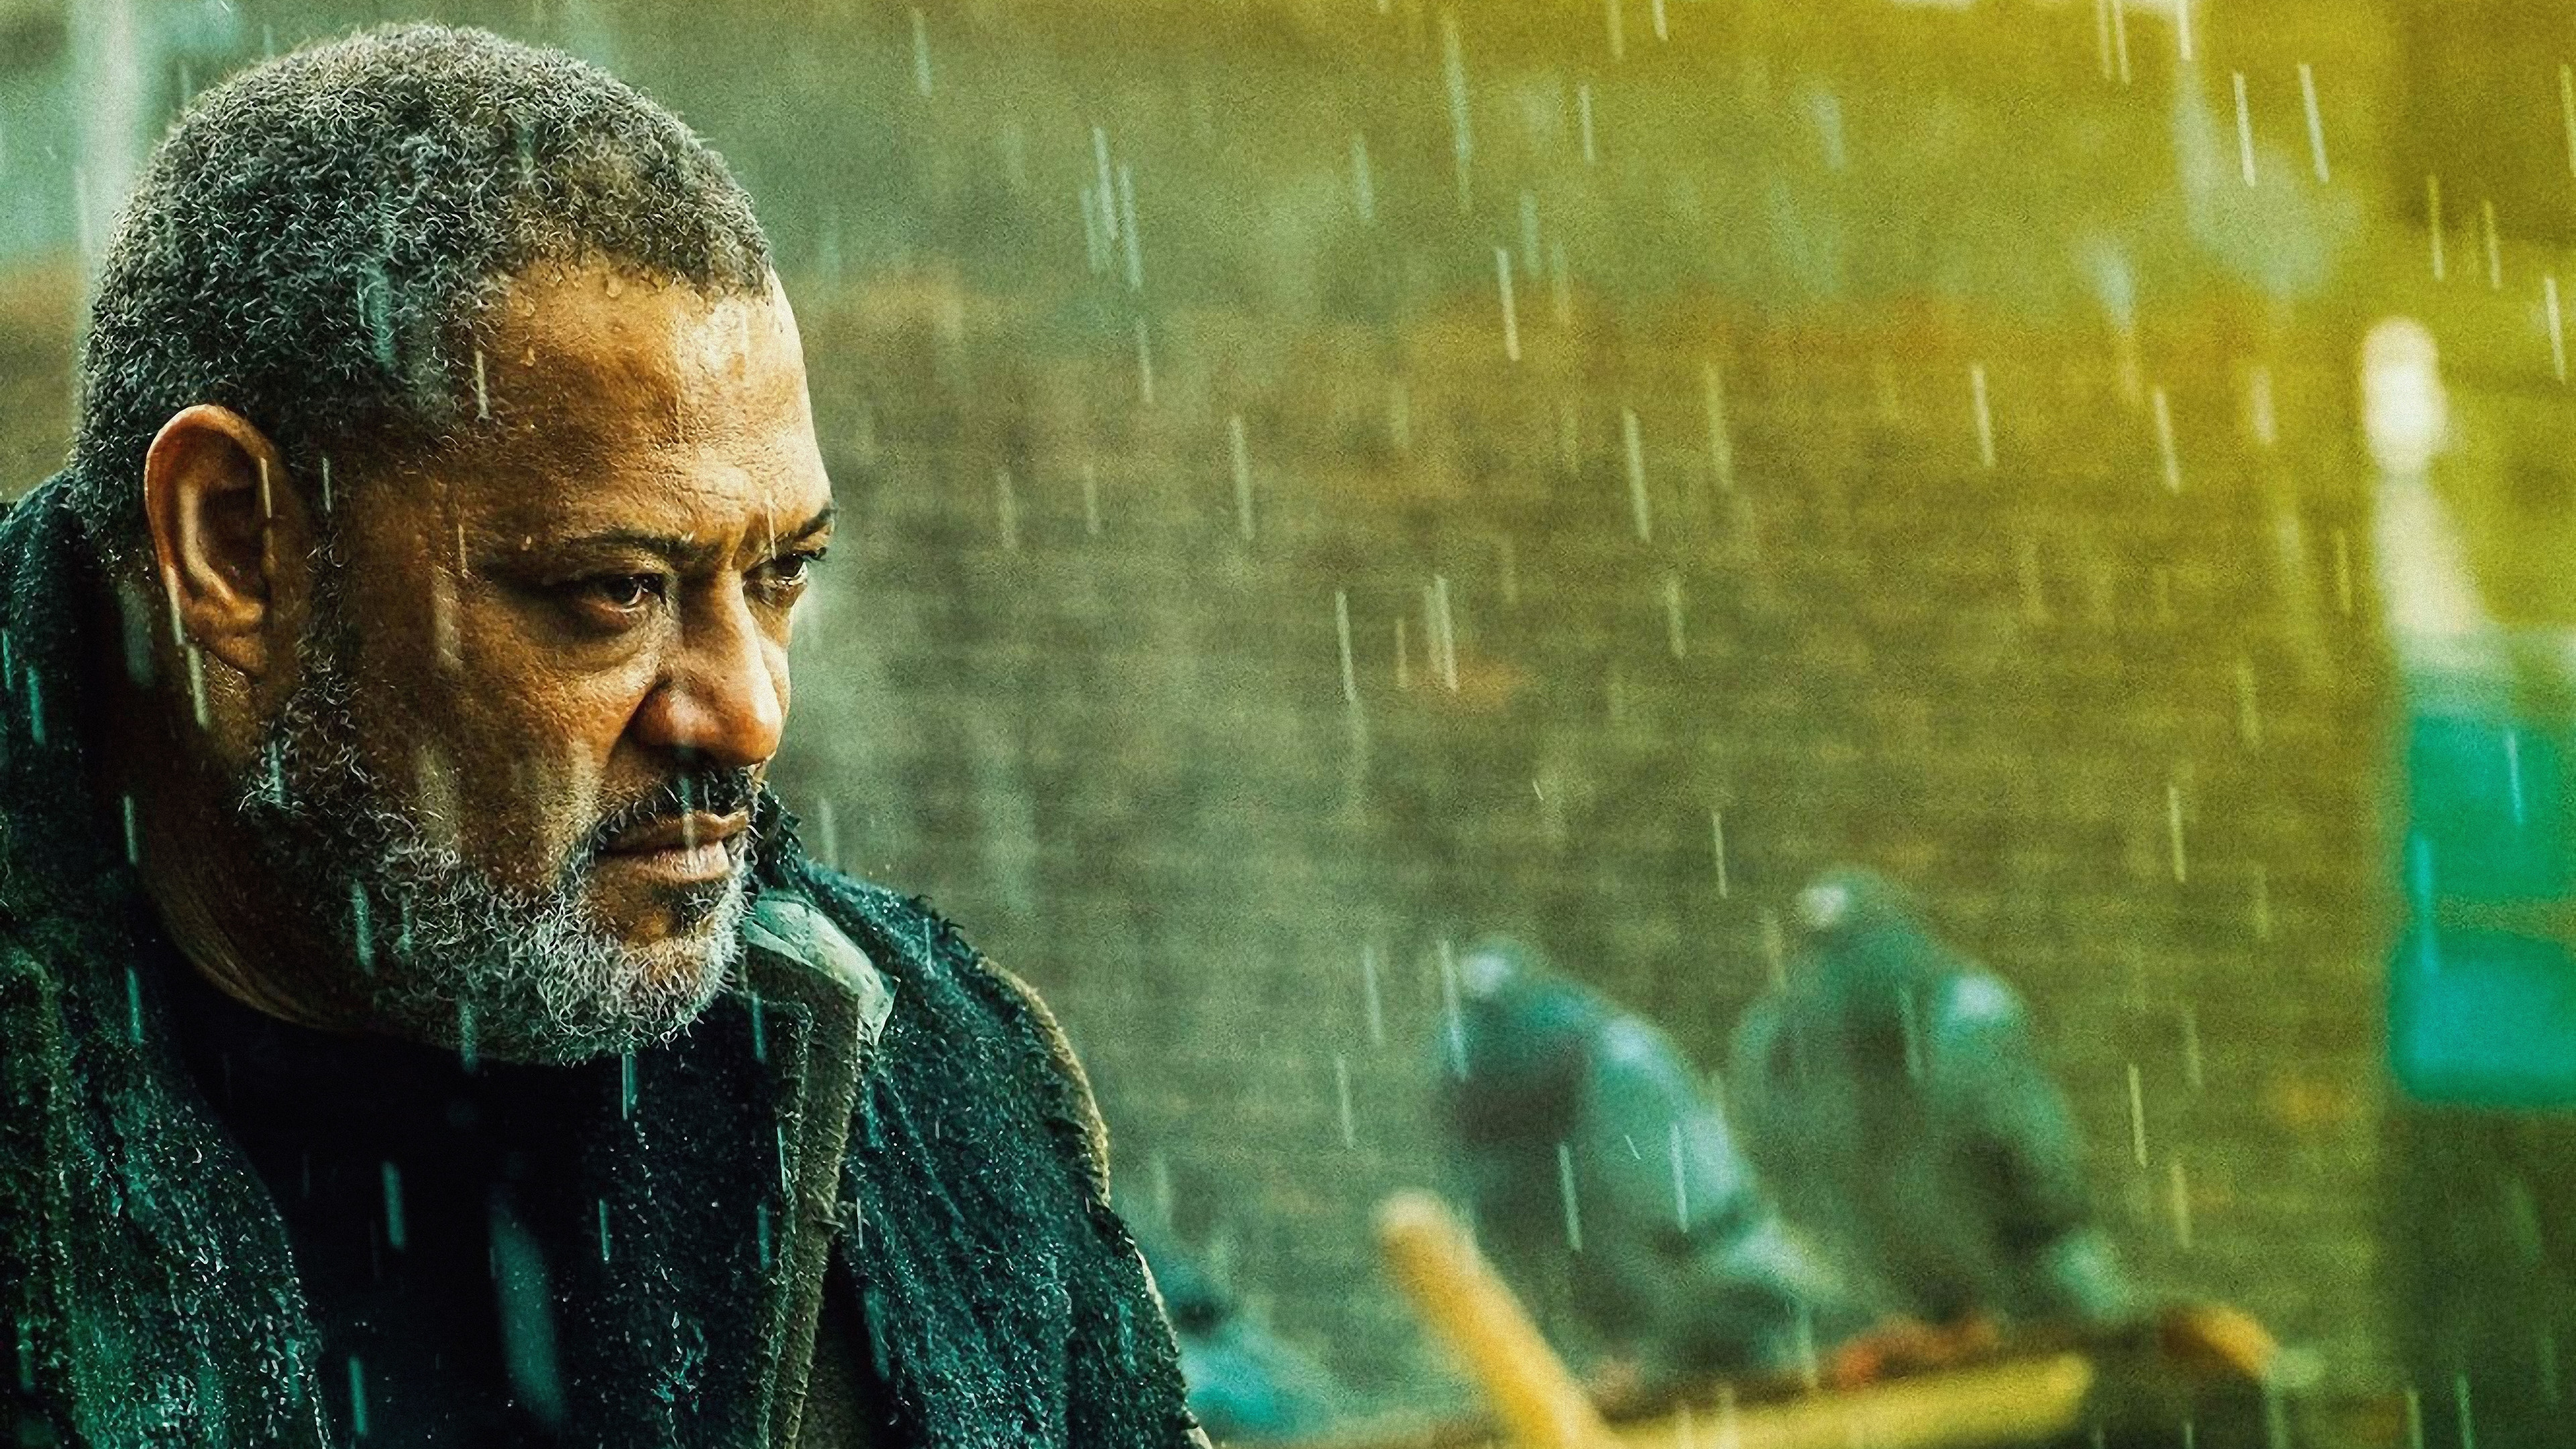 laurence fishburne as bowery king in john wick chapter 3 parabellum 2019 4k 1555208404 - Laurence Fishburne As Bowery King In John Wick Chapter 3 Parabellum 2019 4k - movies wallpapers, john wick chapter 3 wallpapers, john wick 3 wallpapers, john wick 3 parabellum wallpapers, hd-wallpapers, 4k-wallpapers, 2019 movies wallpapers